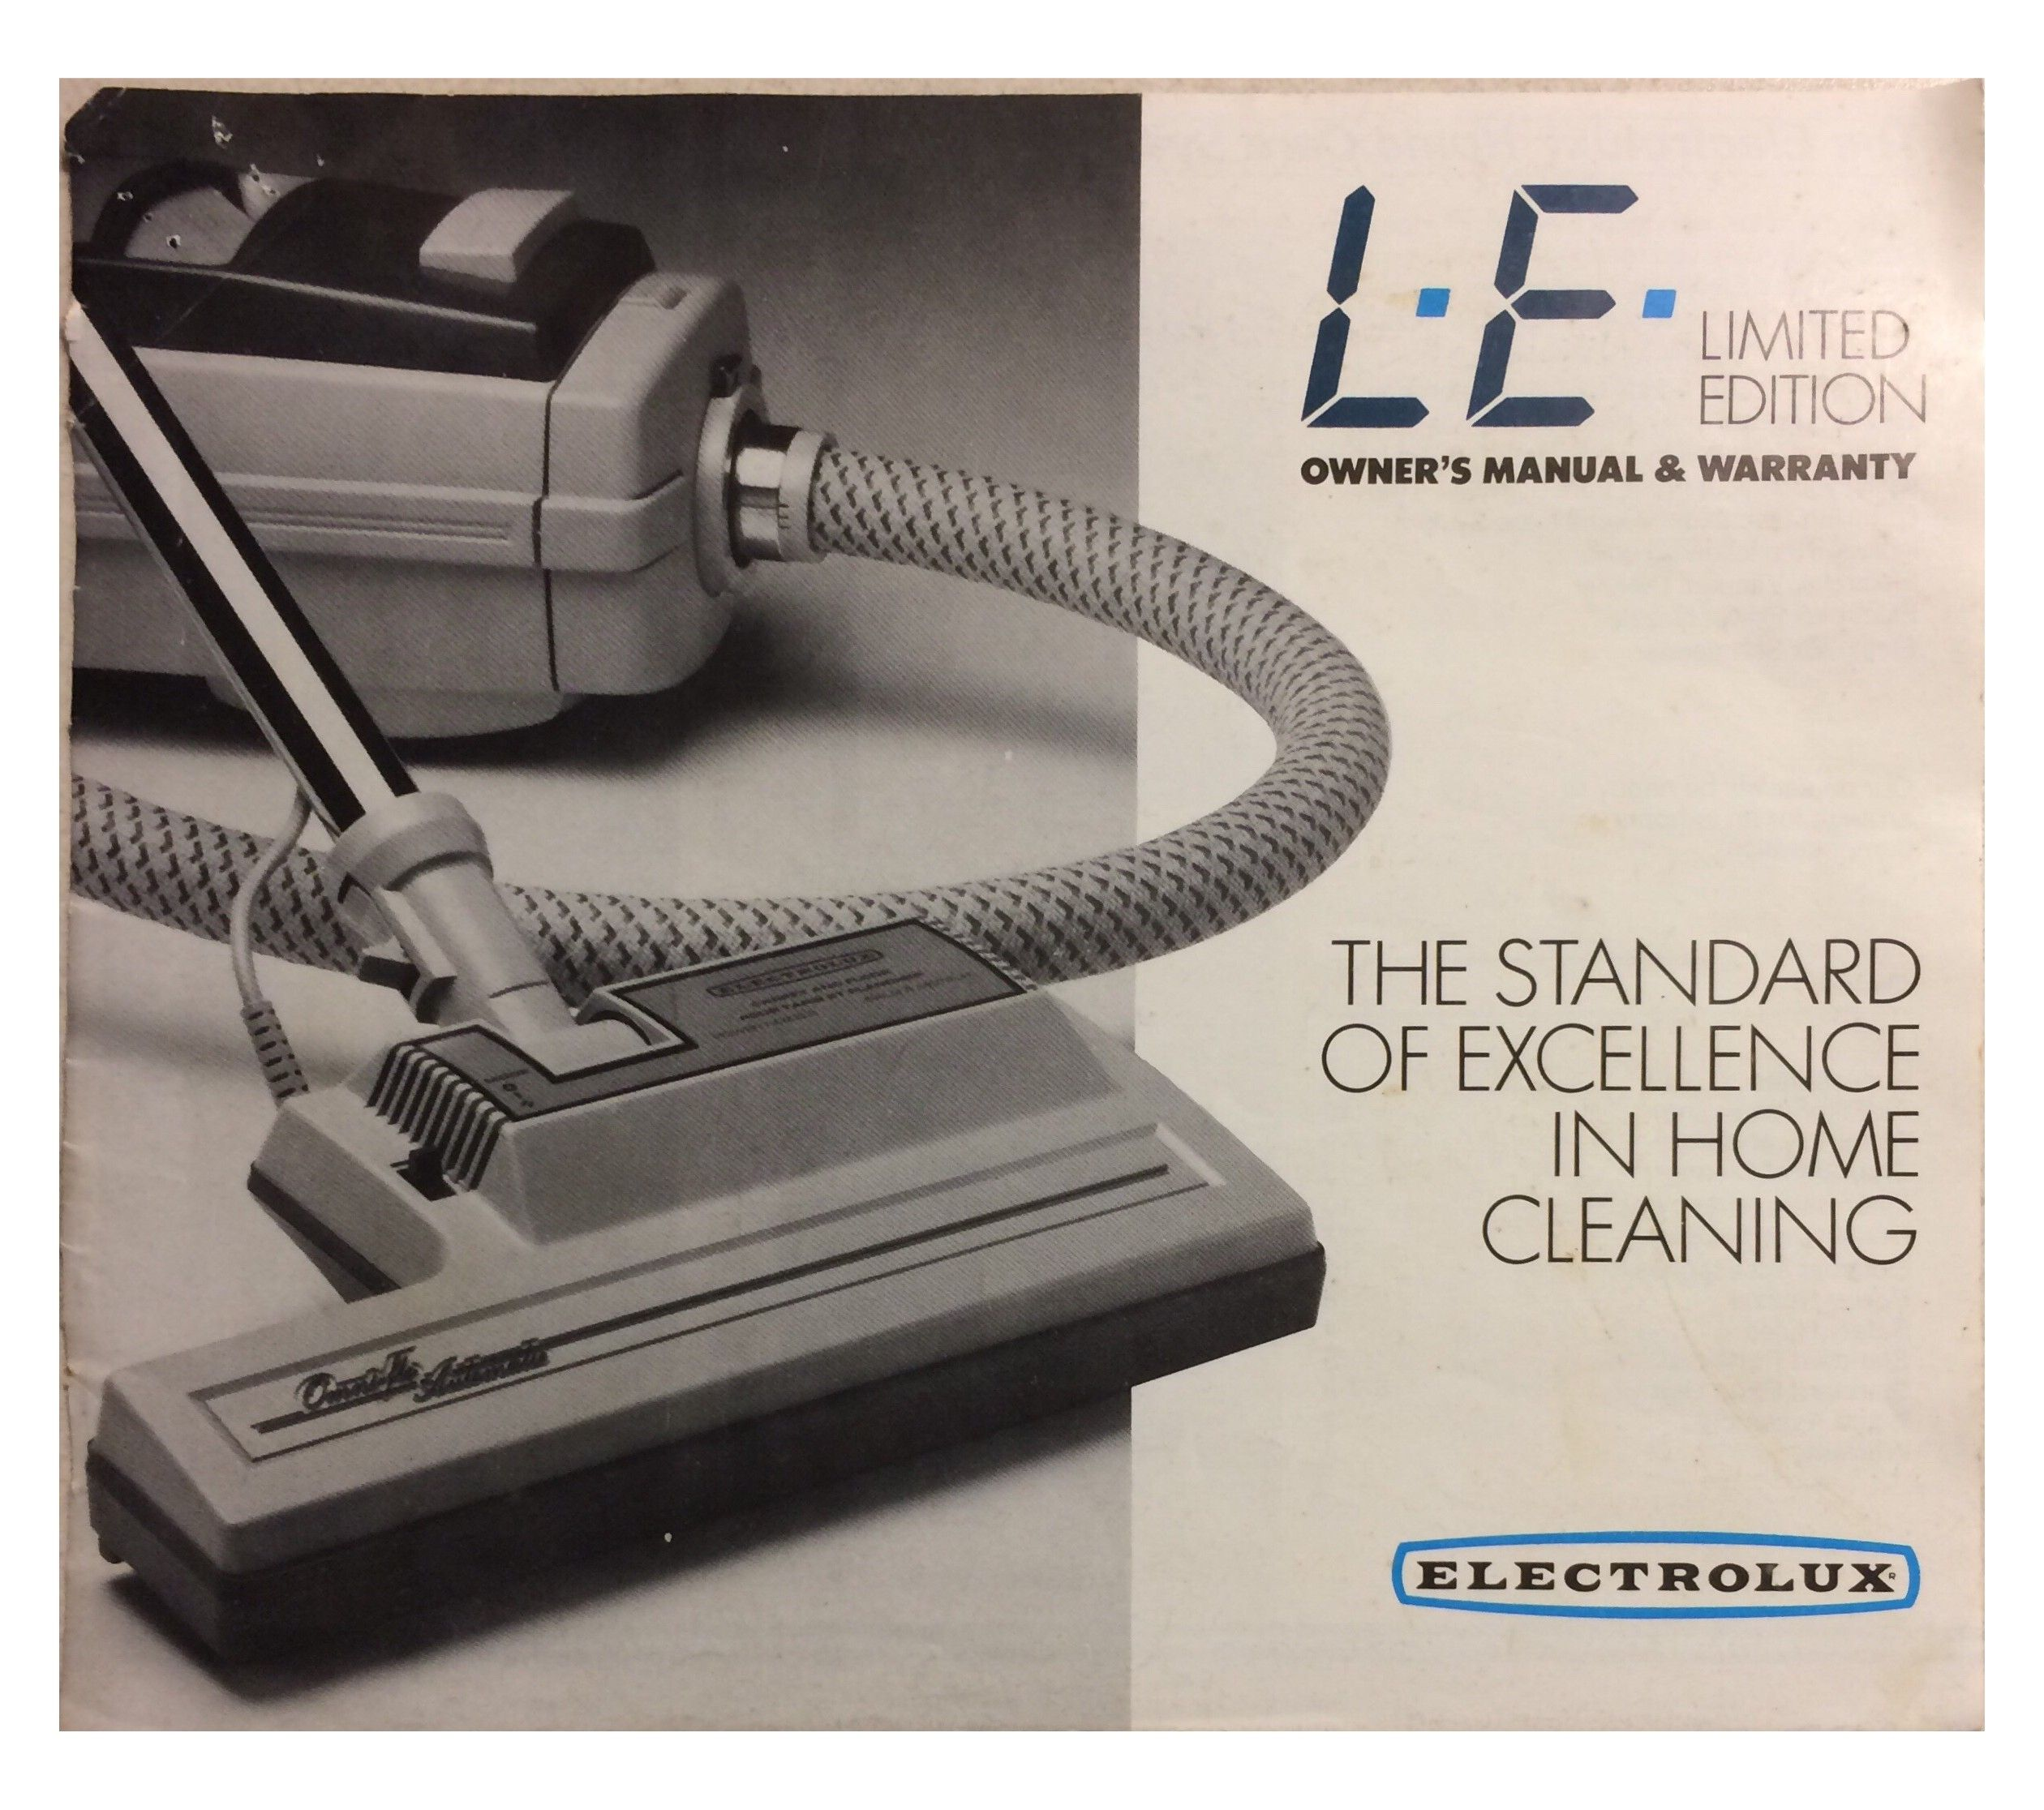 hight resolution of le electrolux limited edition vacuum cleaner manual pg 1